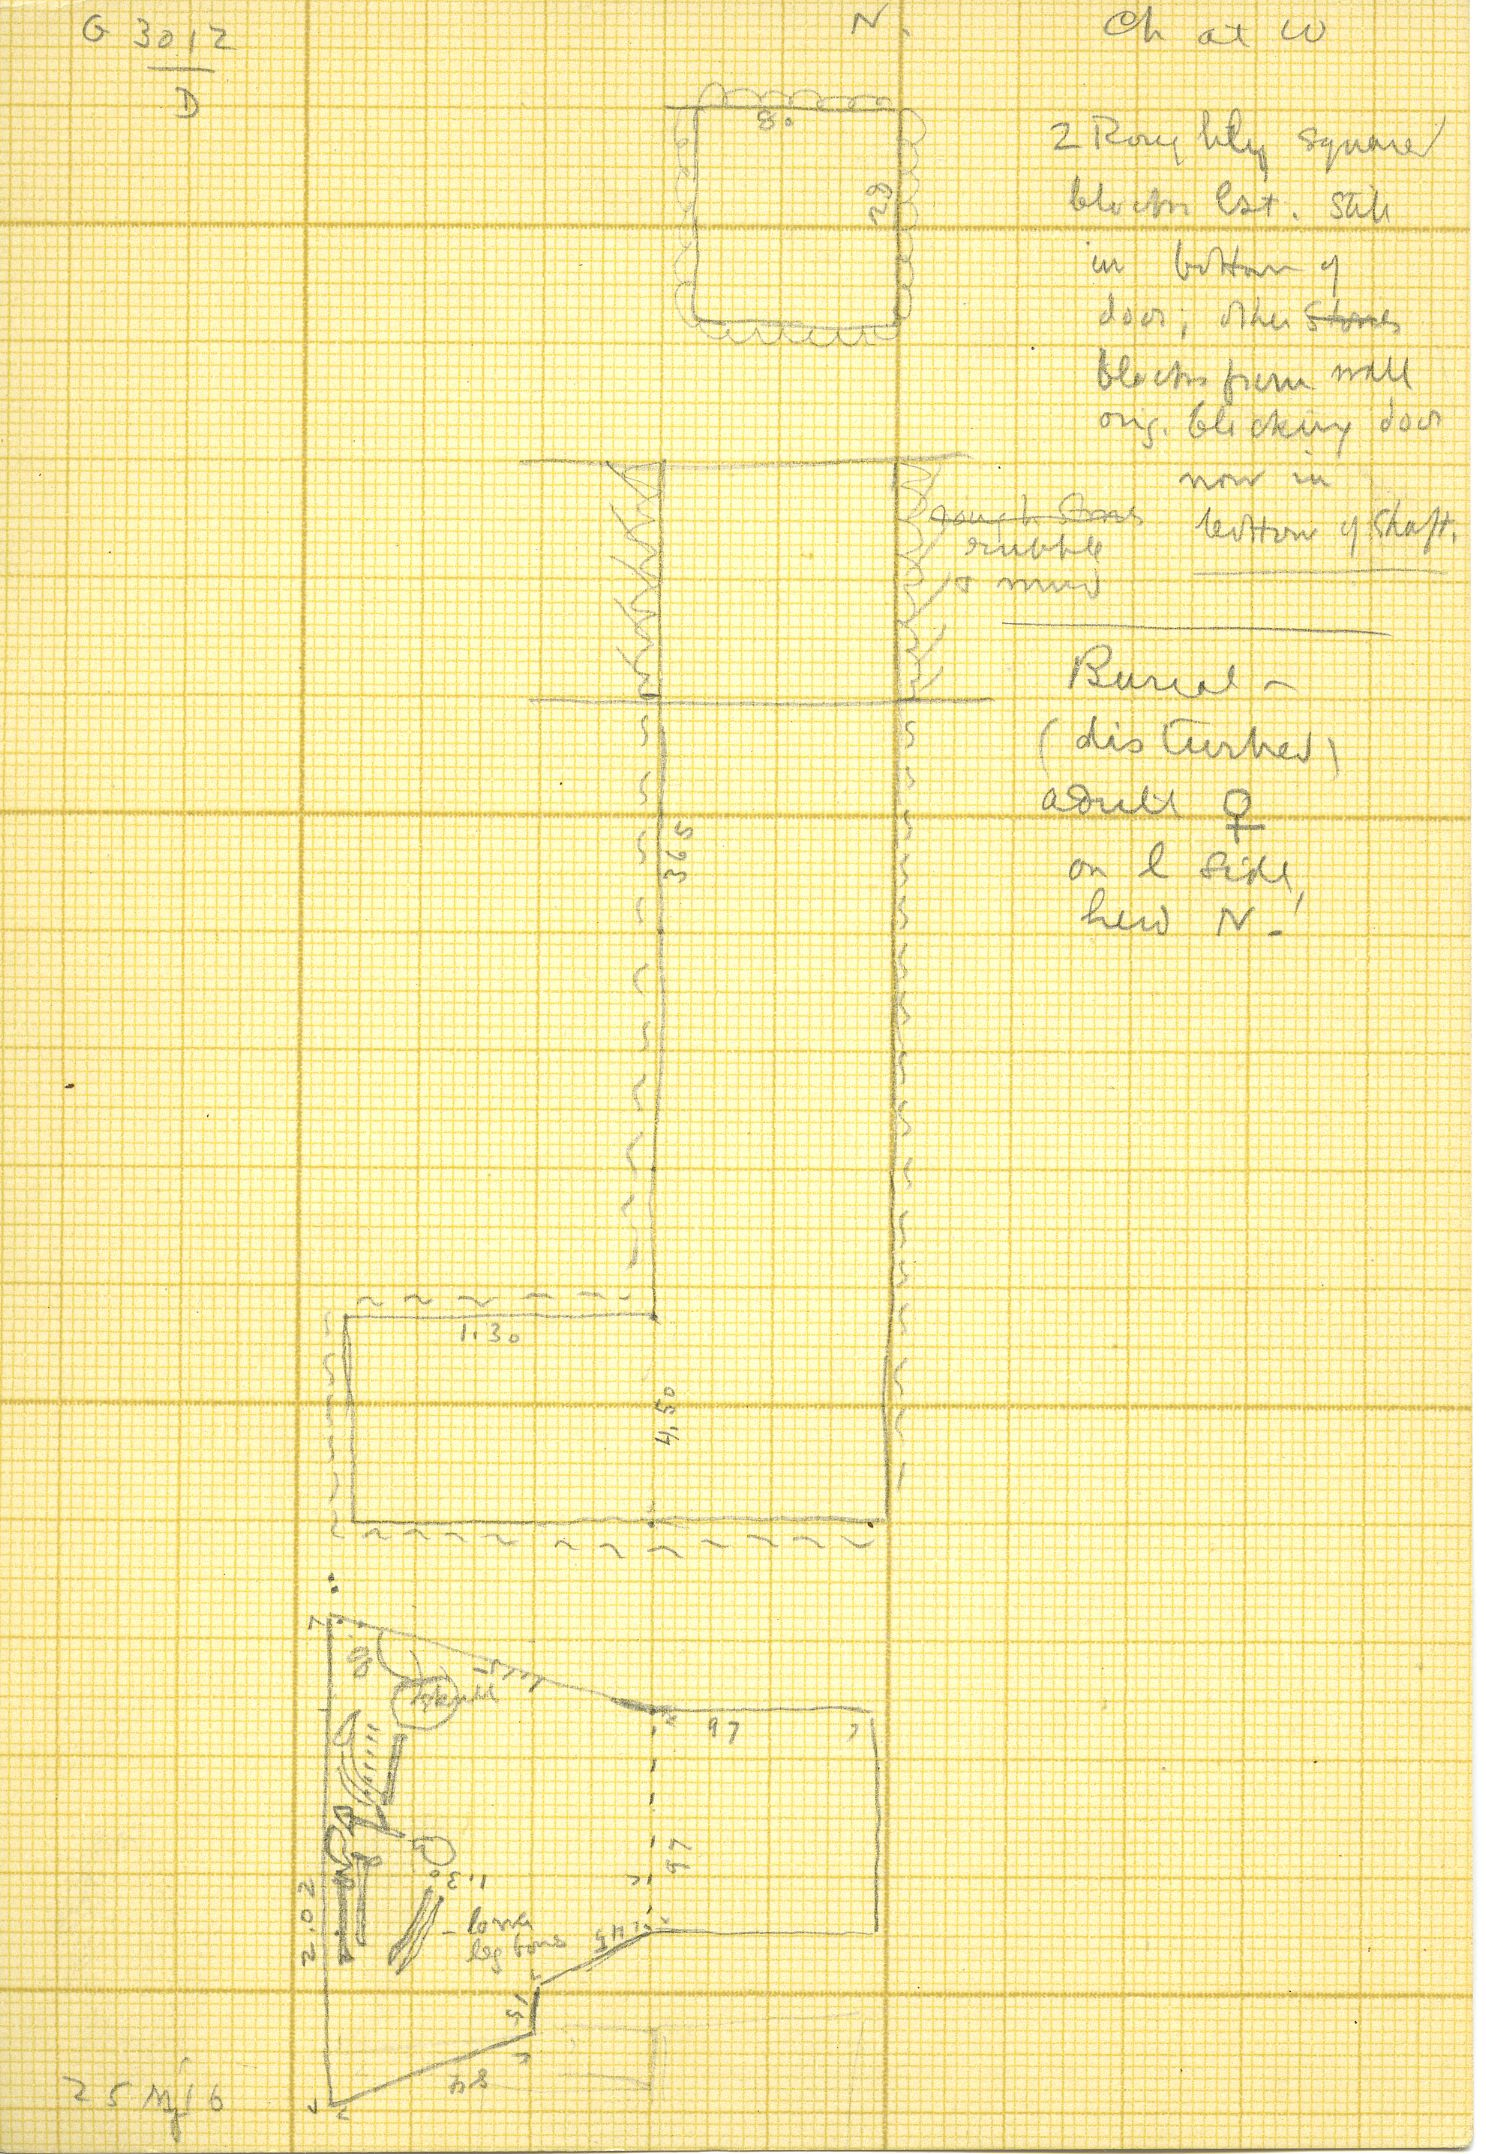 Maps and plans: G 3012, Shaft D